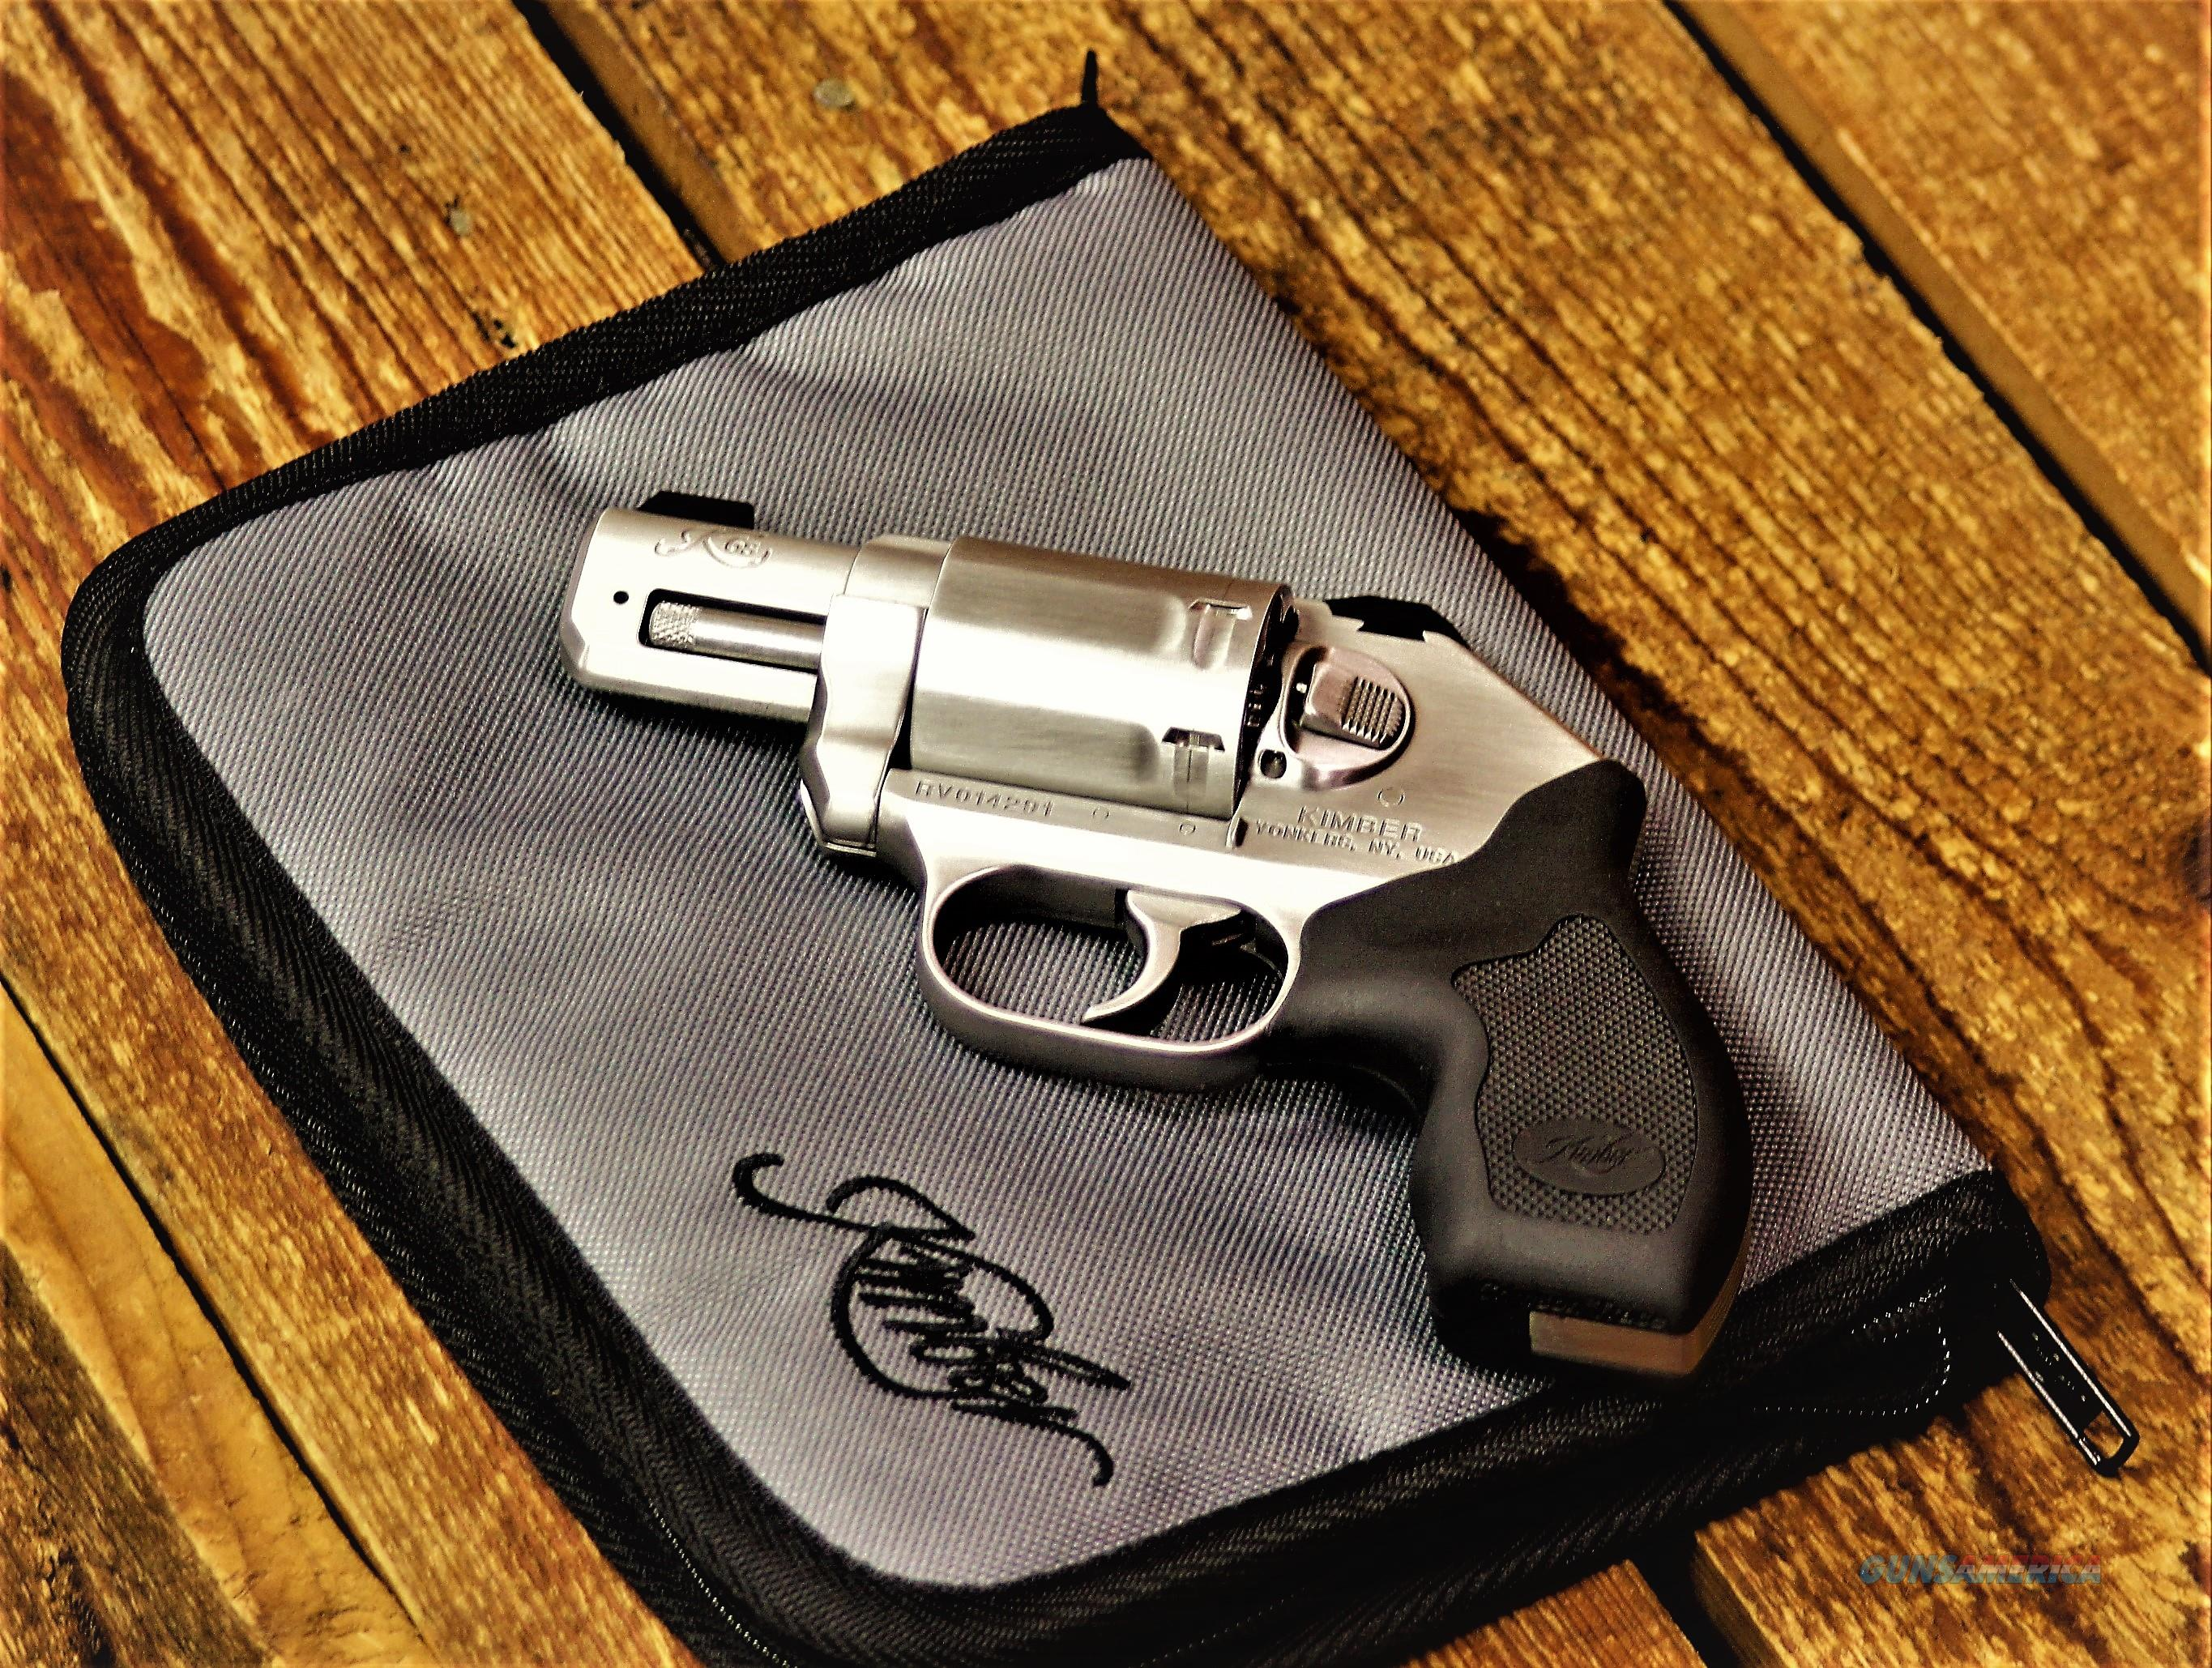 $74 WARNING NON California STATE COMPLIANT IT'S Not SAFE Kimber concealed Carry Knock Down On Impact ? Pocket Revolver Cannon DAO   6-shot 357 Magnum lightweight   SS Stainless Steel match grade satin Serrated backstrap KIM3400010 EASY PAY   Guns > Pistols > Kimber of America Pistols > Revolvers